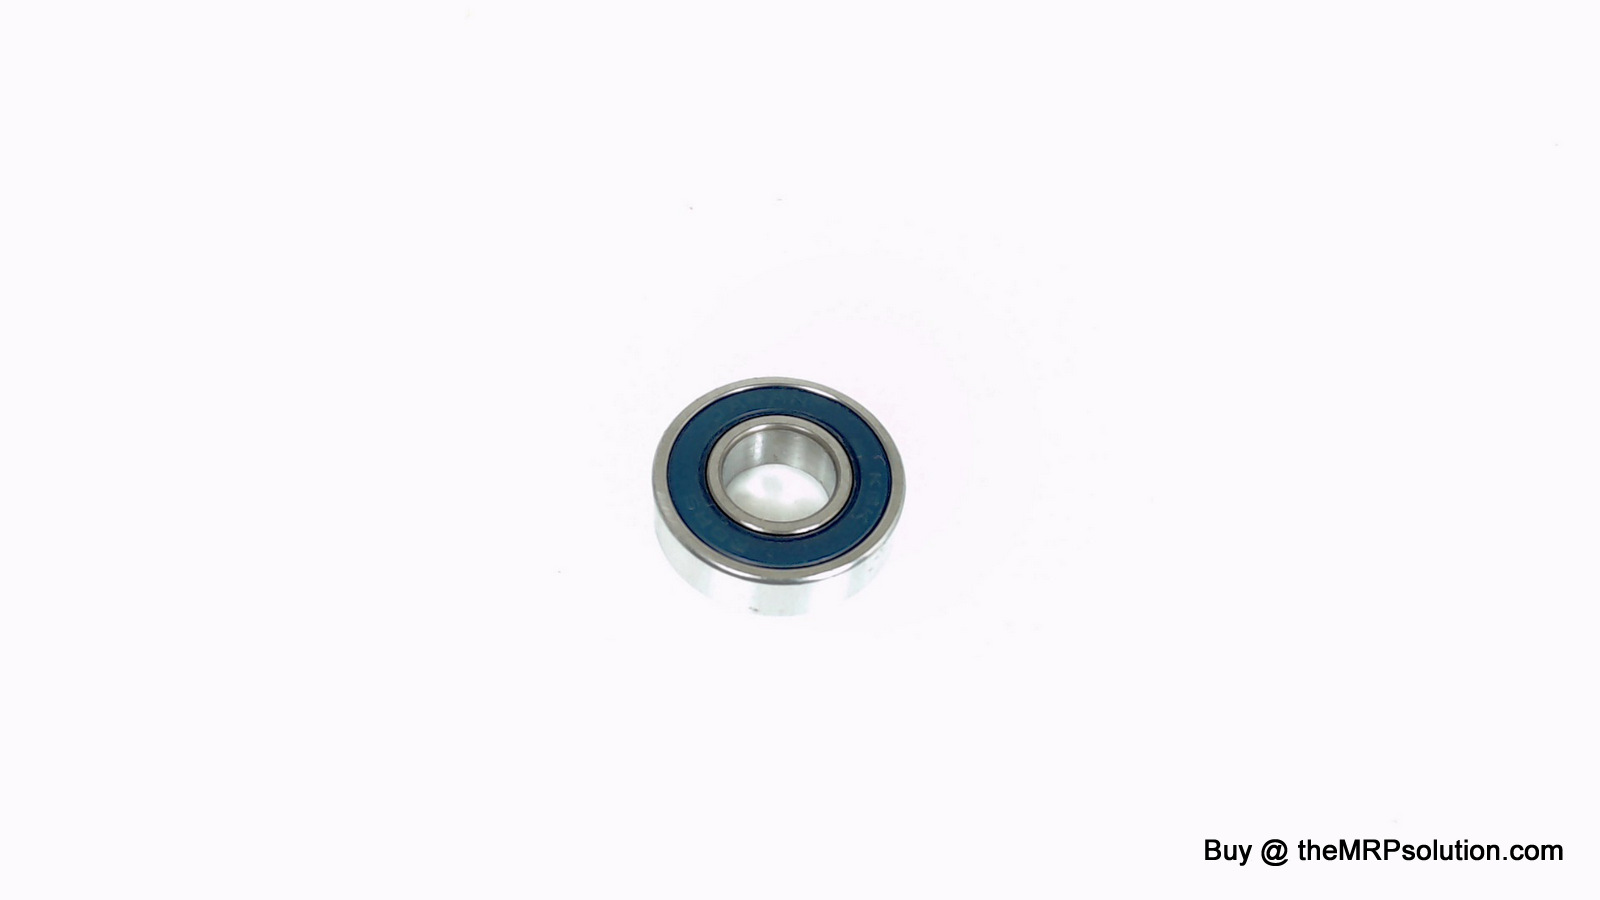 TALLYGEN 730094 BEARING, T6140 Refurbished